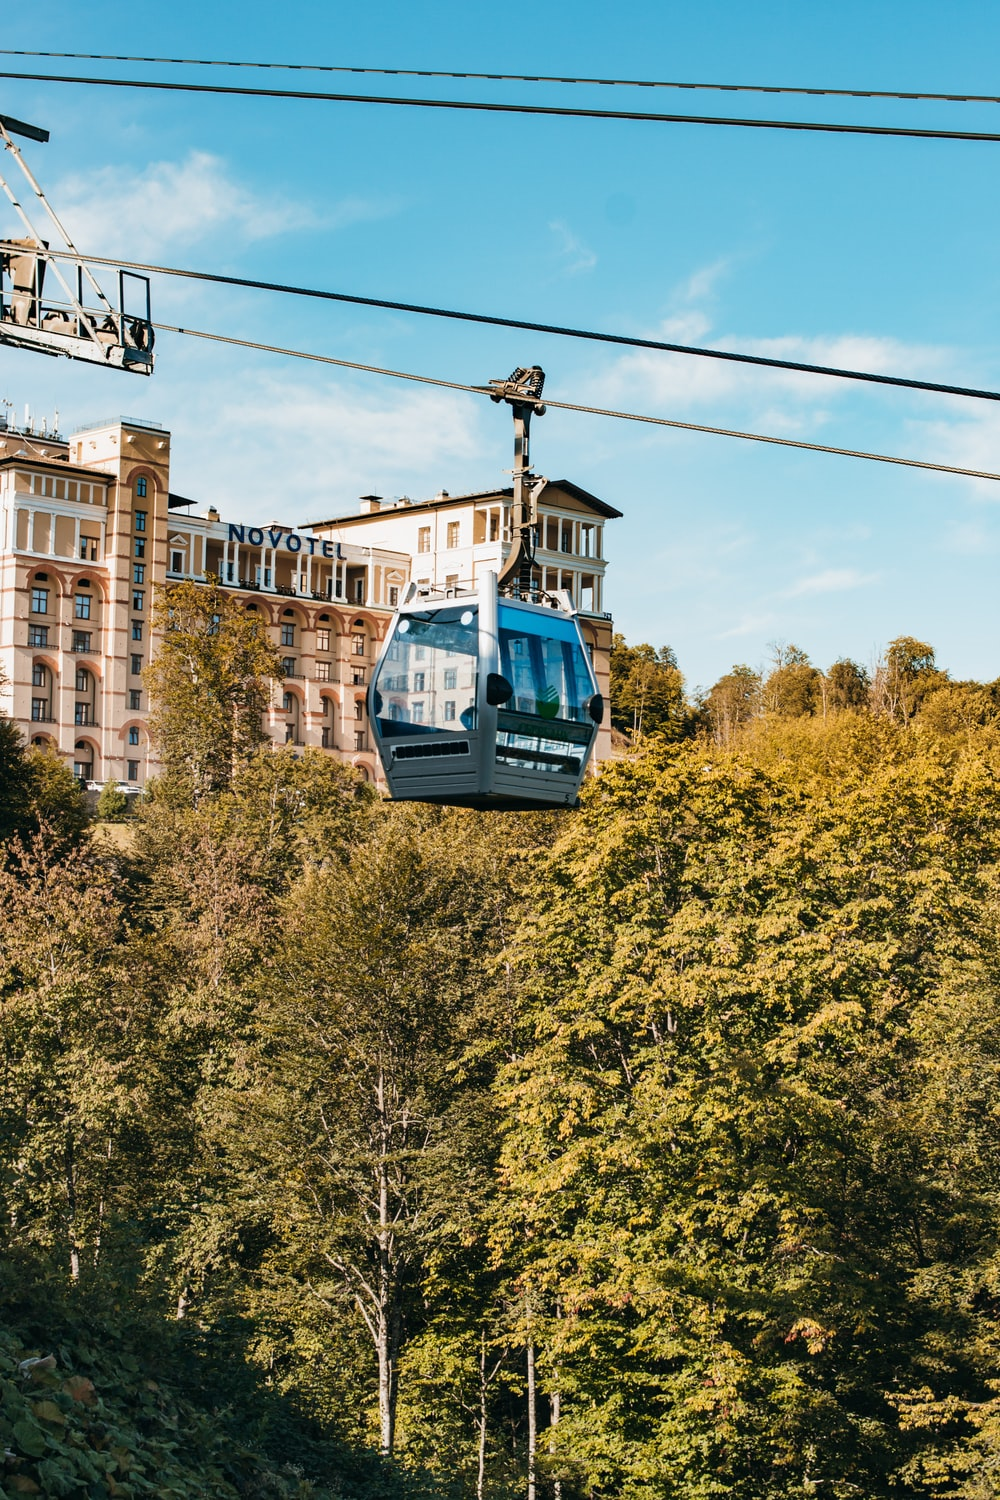 gray and white cable car